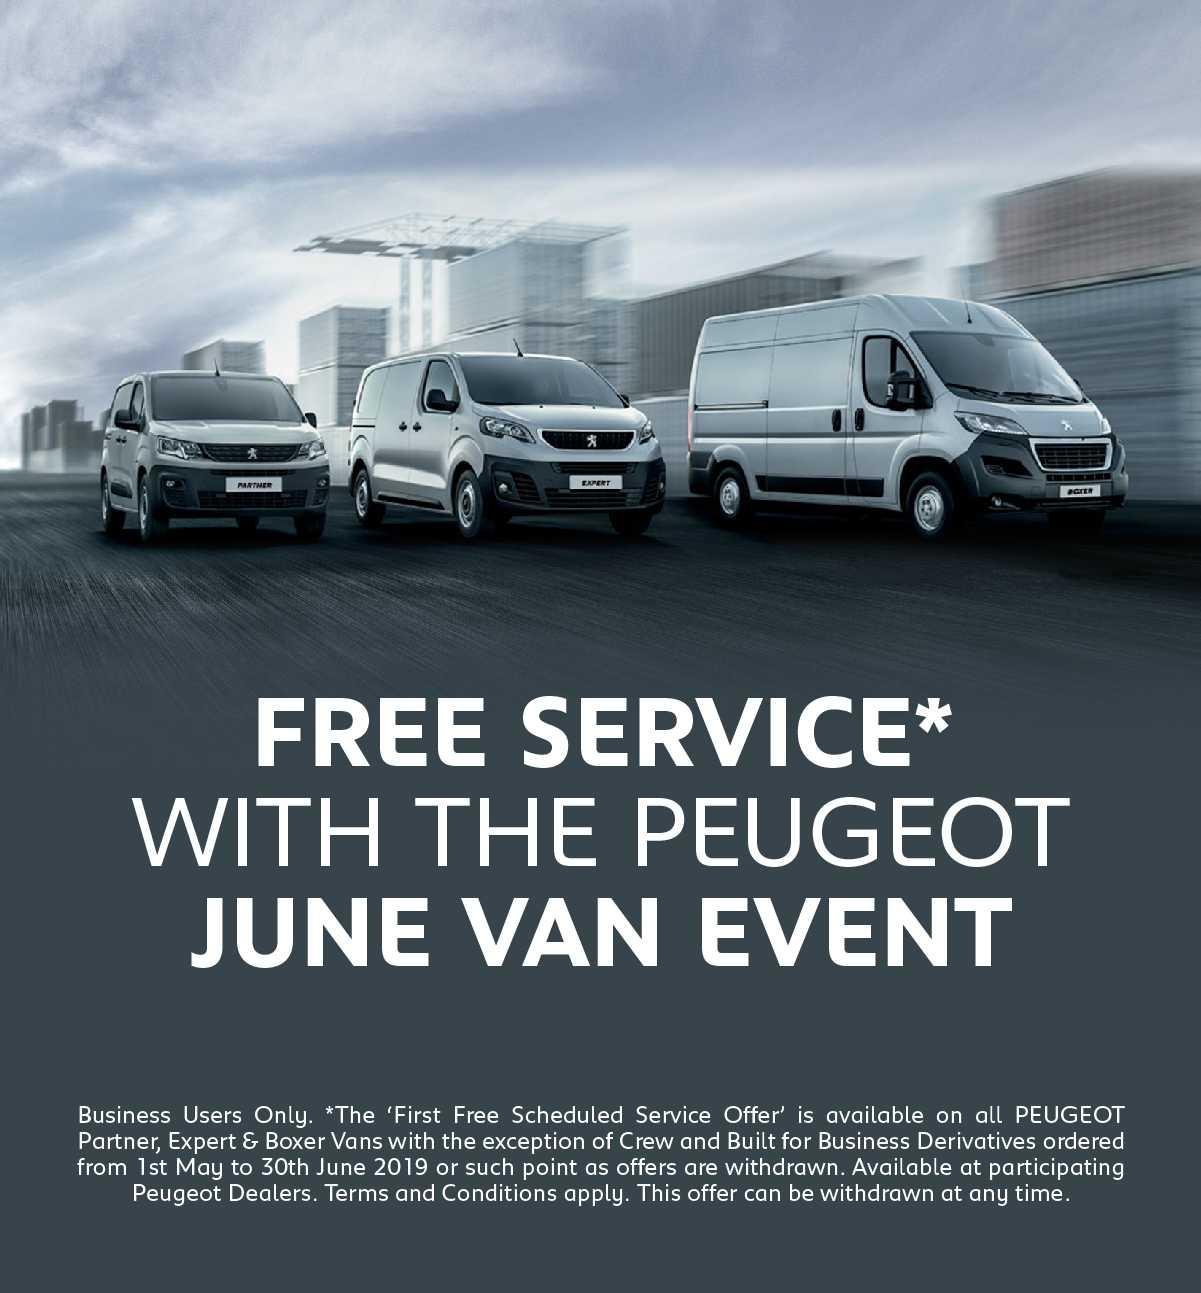 [Peugeot Generic] Peugeot Event May-June 300519 Banner 1